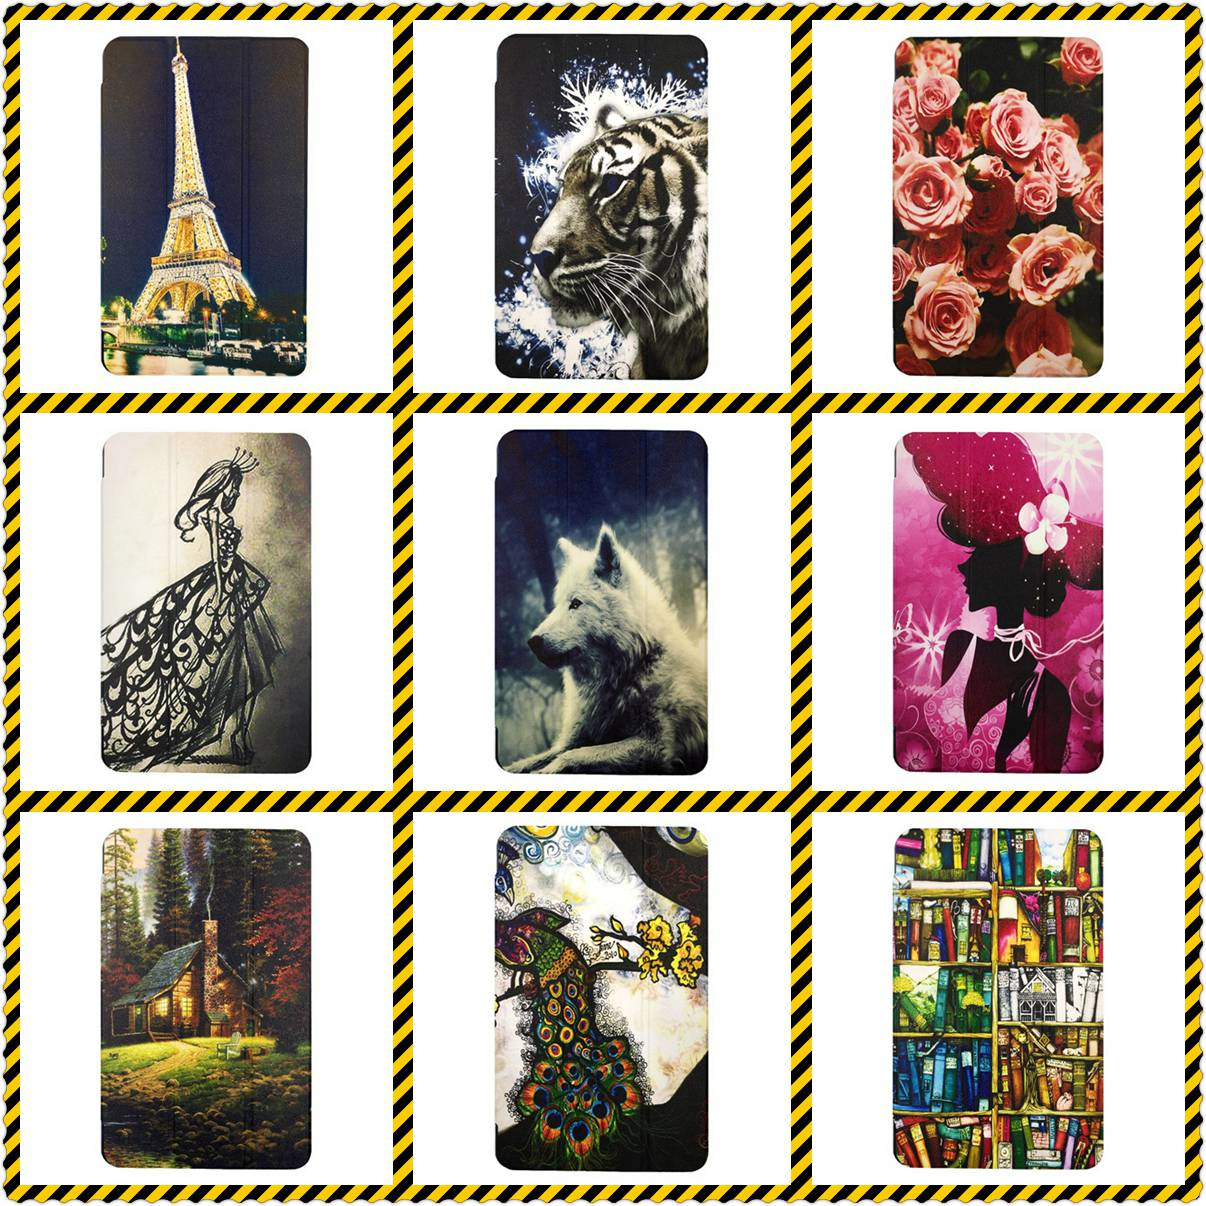 Tablet Coque Funda Hulle Custodie Shell Cover Case for Samsung Galaxy Tab 4 SM-T230 Case Coque Funda Hulle Custodie 16 styles